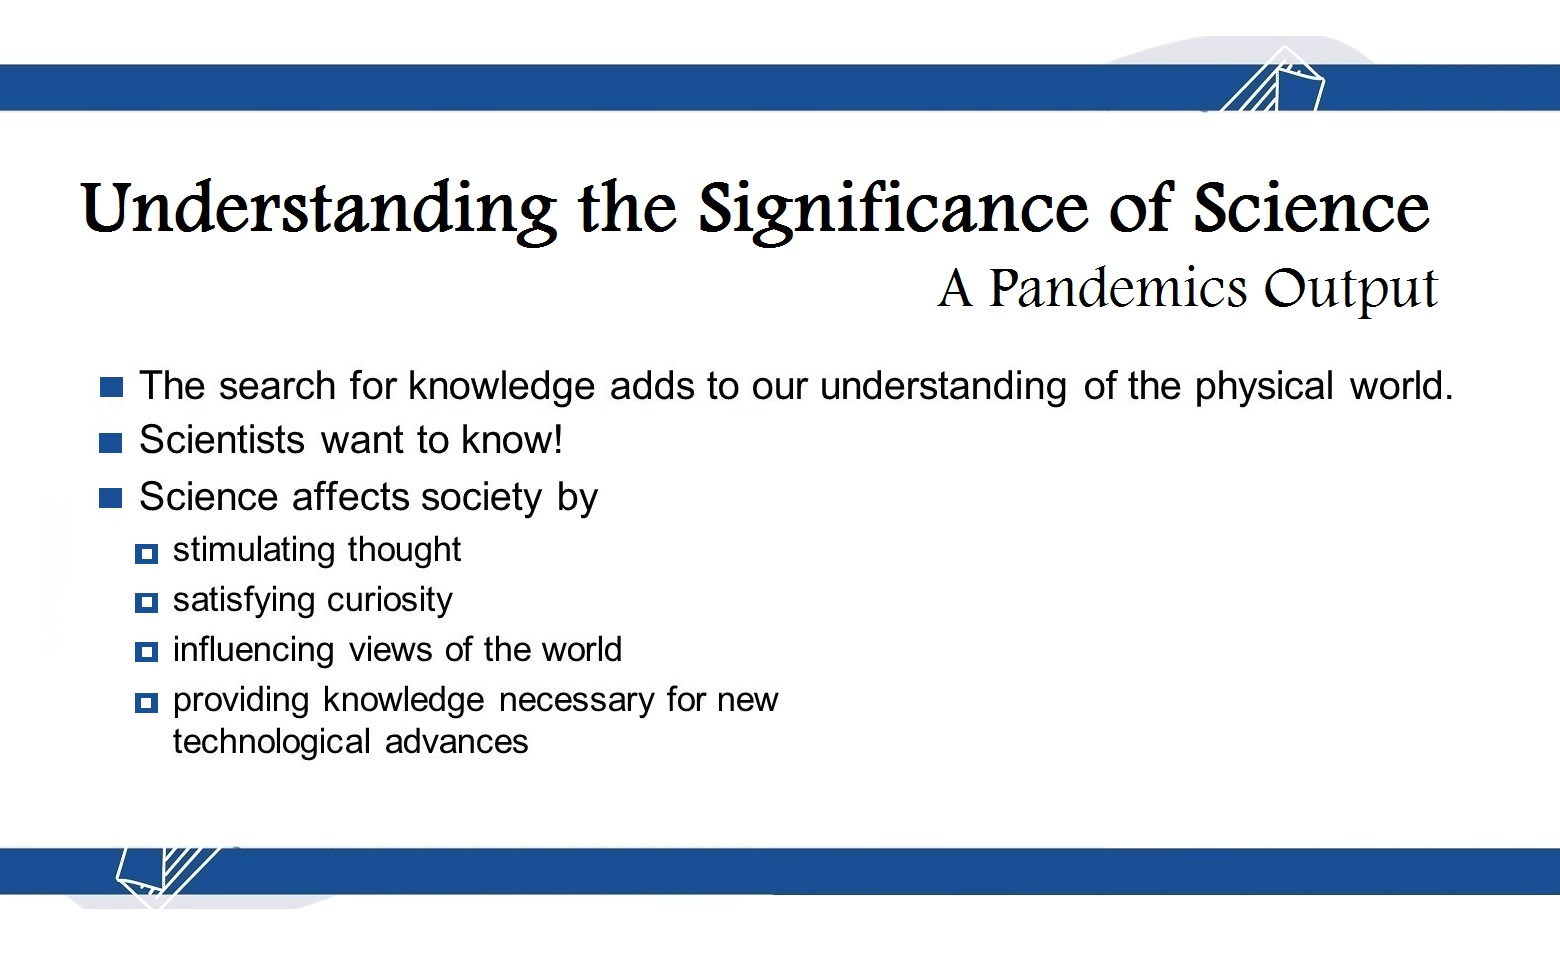 significance of science during covid19